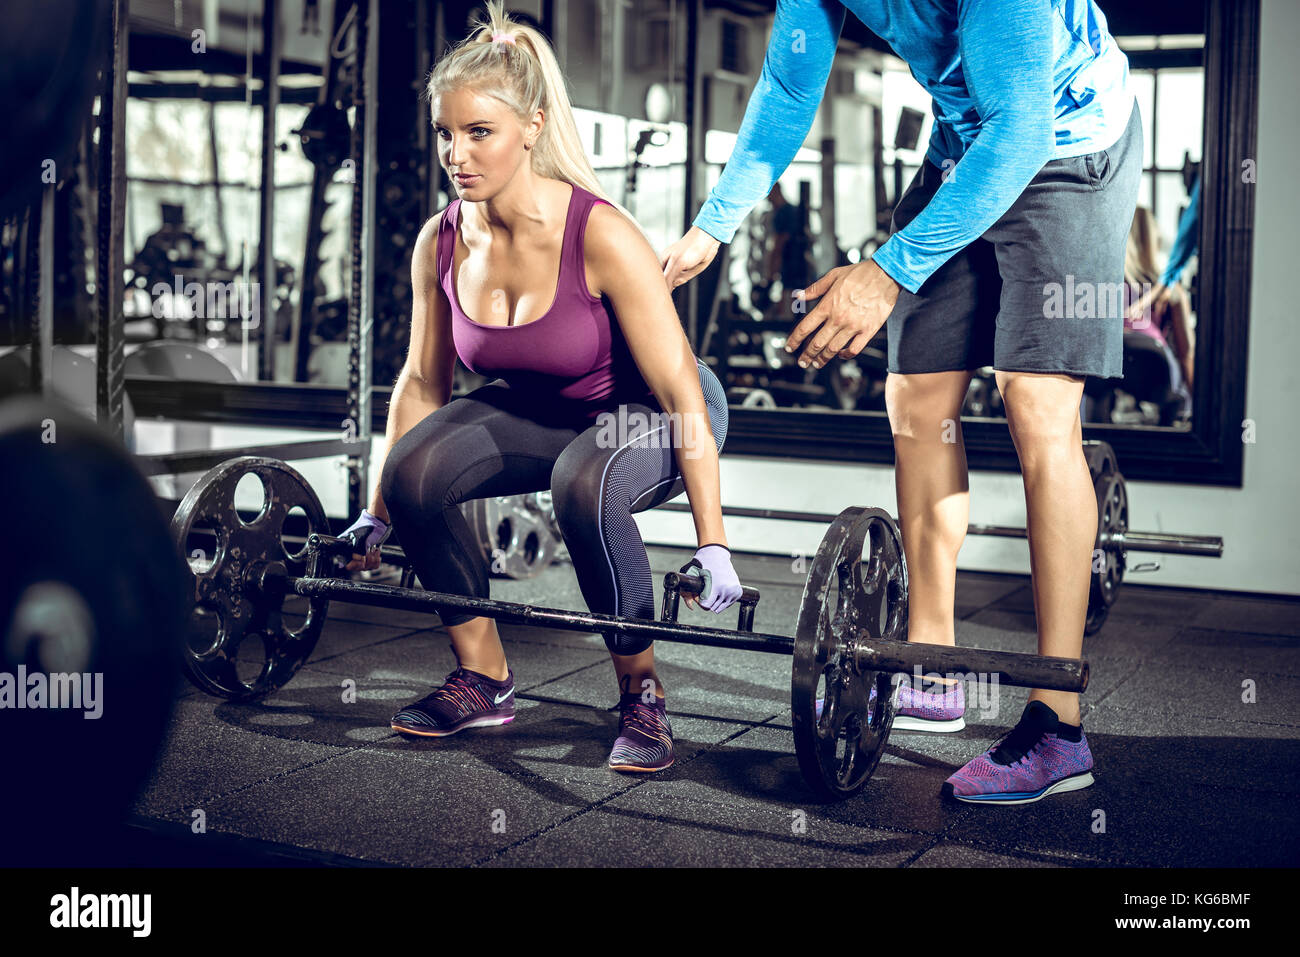 Attractive blonde woman doing trap bar deadlift exercise with help